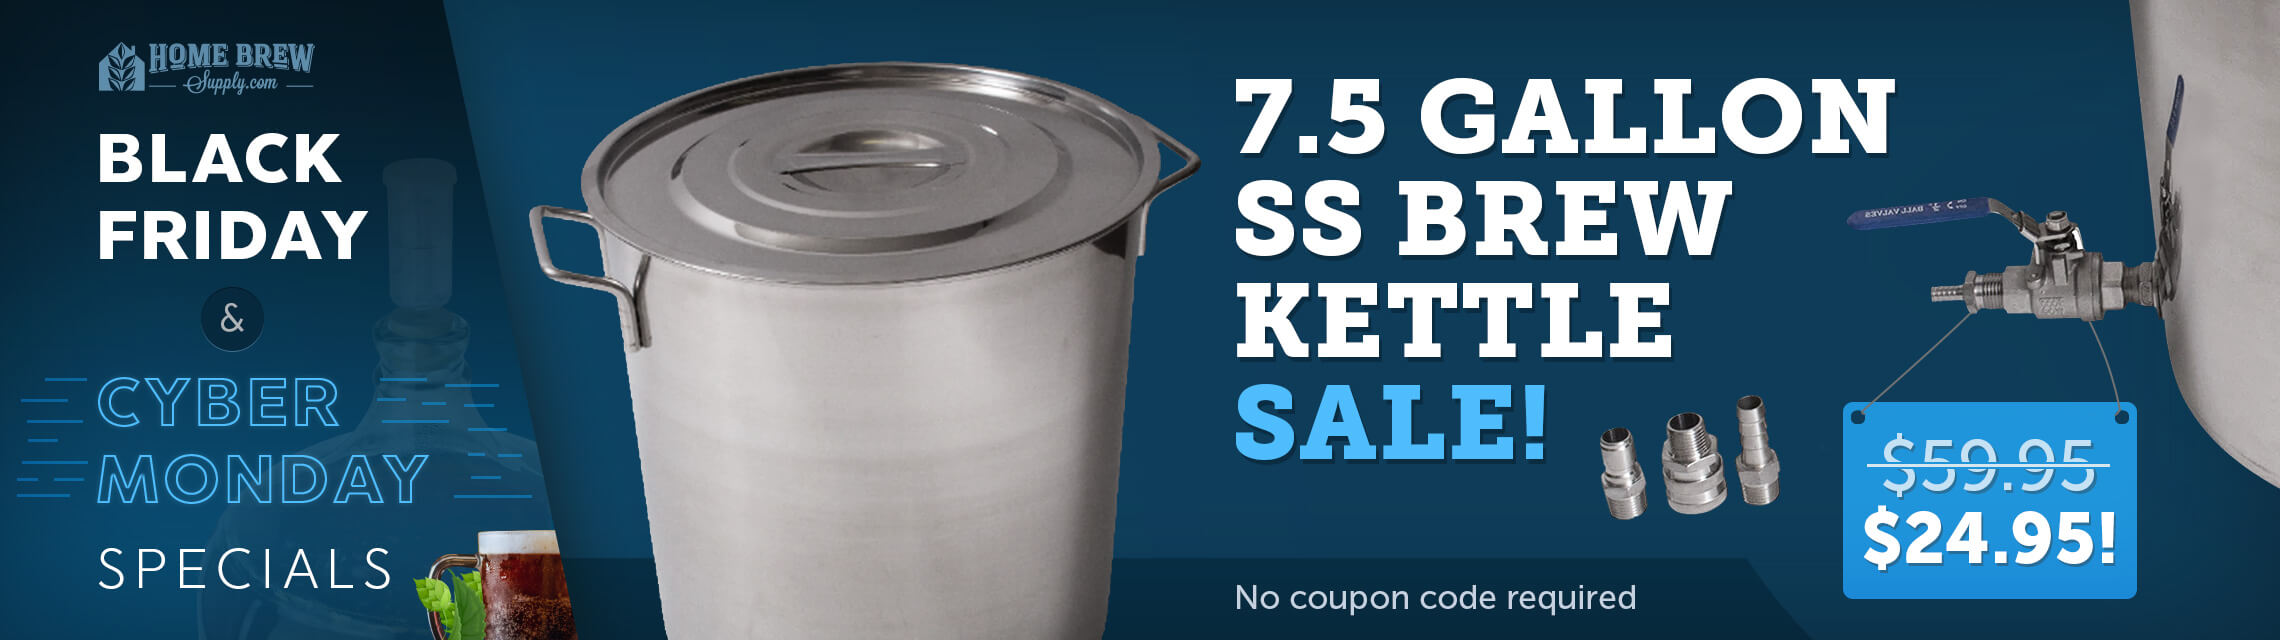 7.5 Gallon SS Brew Kettle Sale! Now For Only $24.95!